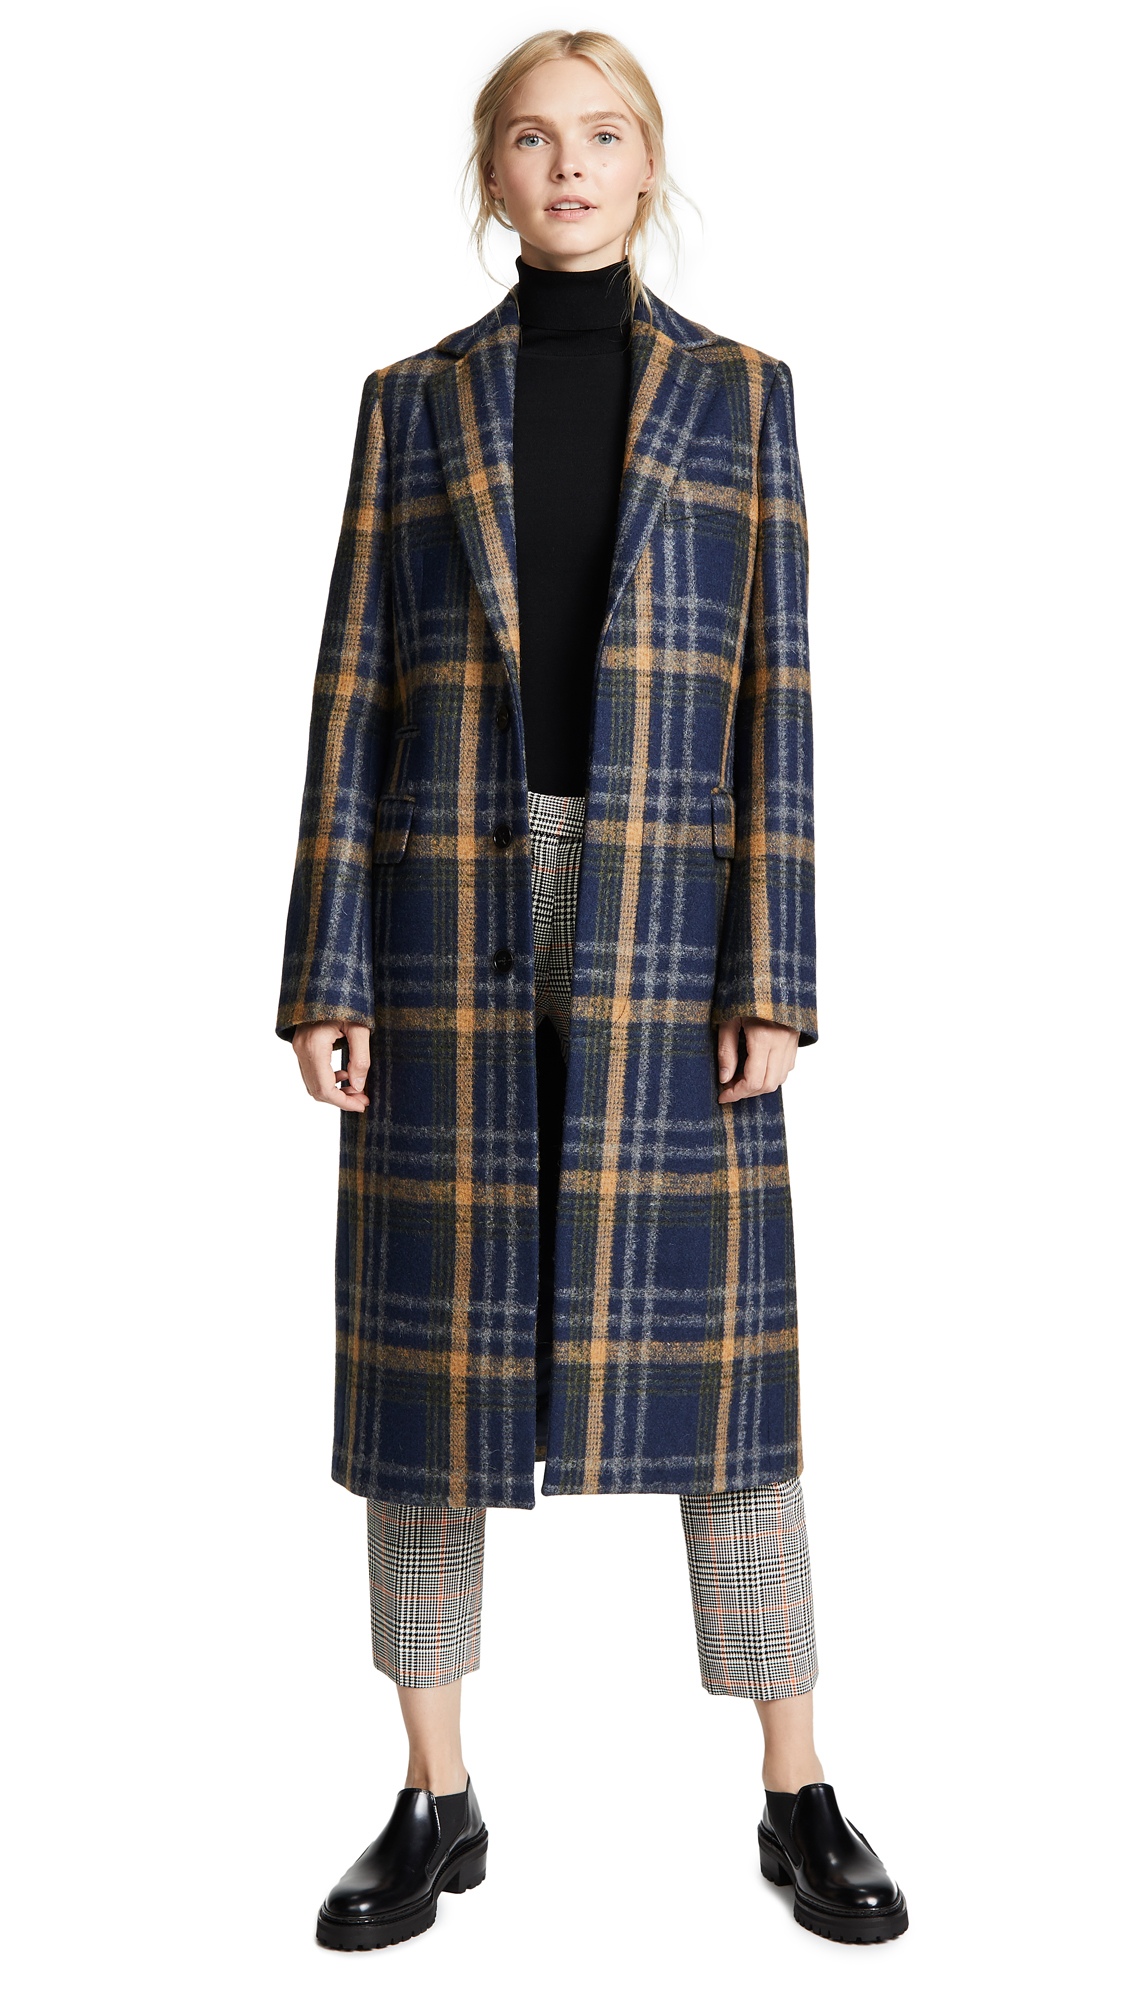 Acne Studios Plaid Long Coat In Blue/Brown